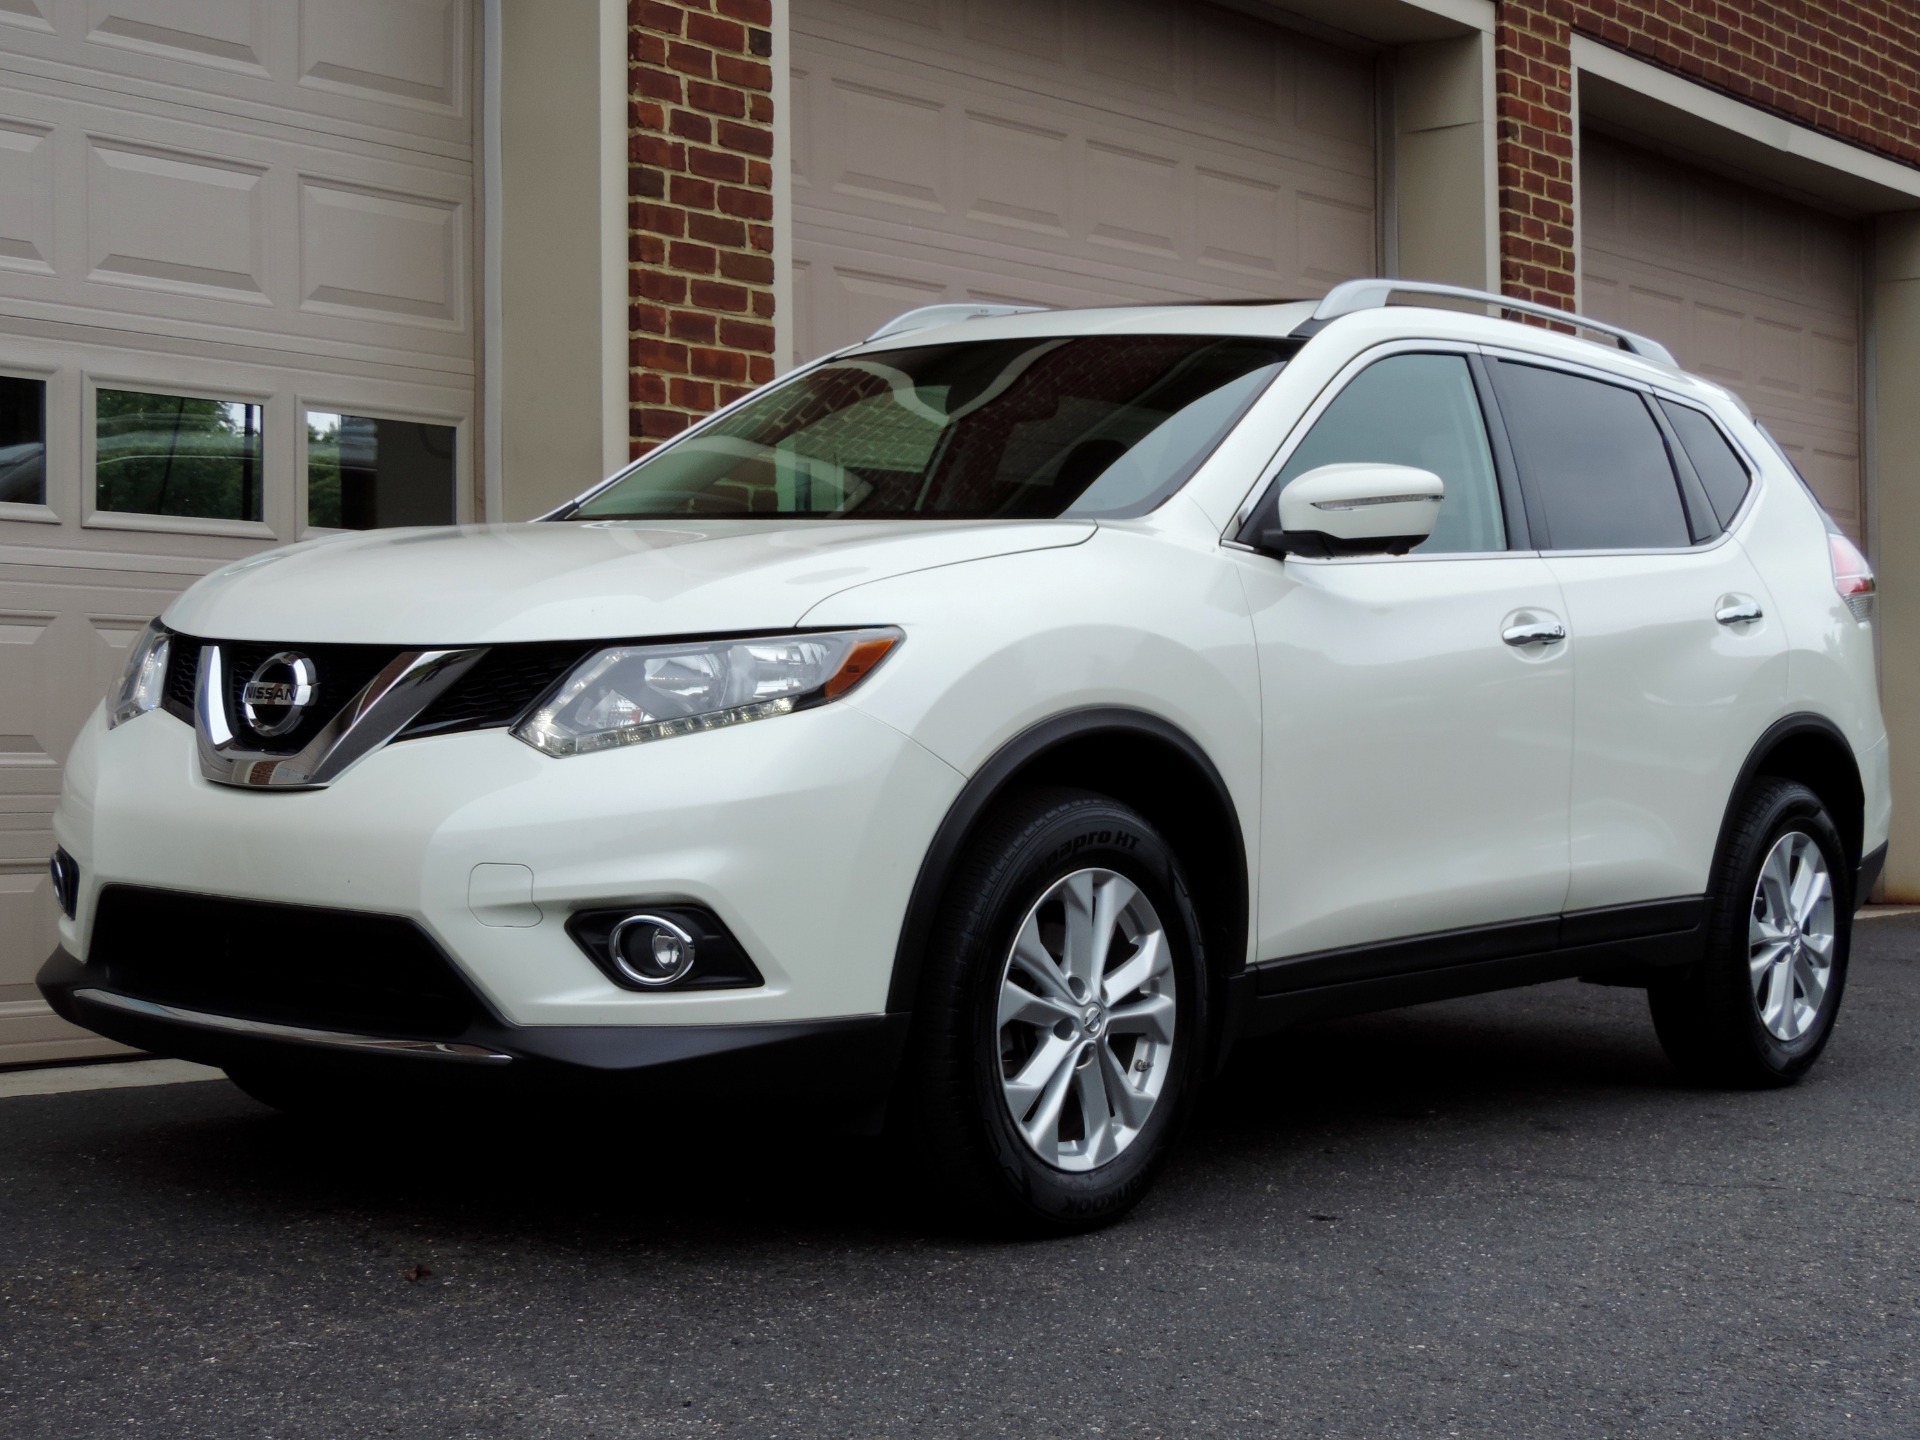 Nissan Dealers In Nj >> 2015 Nissan Rogue SV Premium Package Stock # 908240 for ...